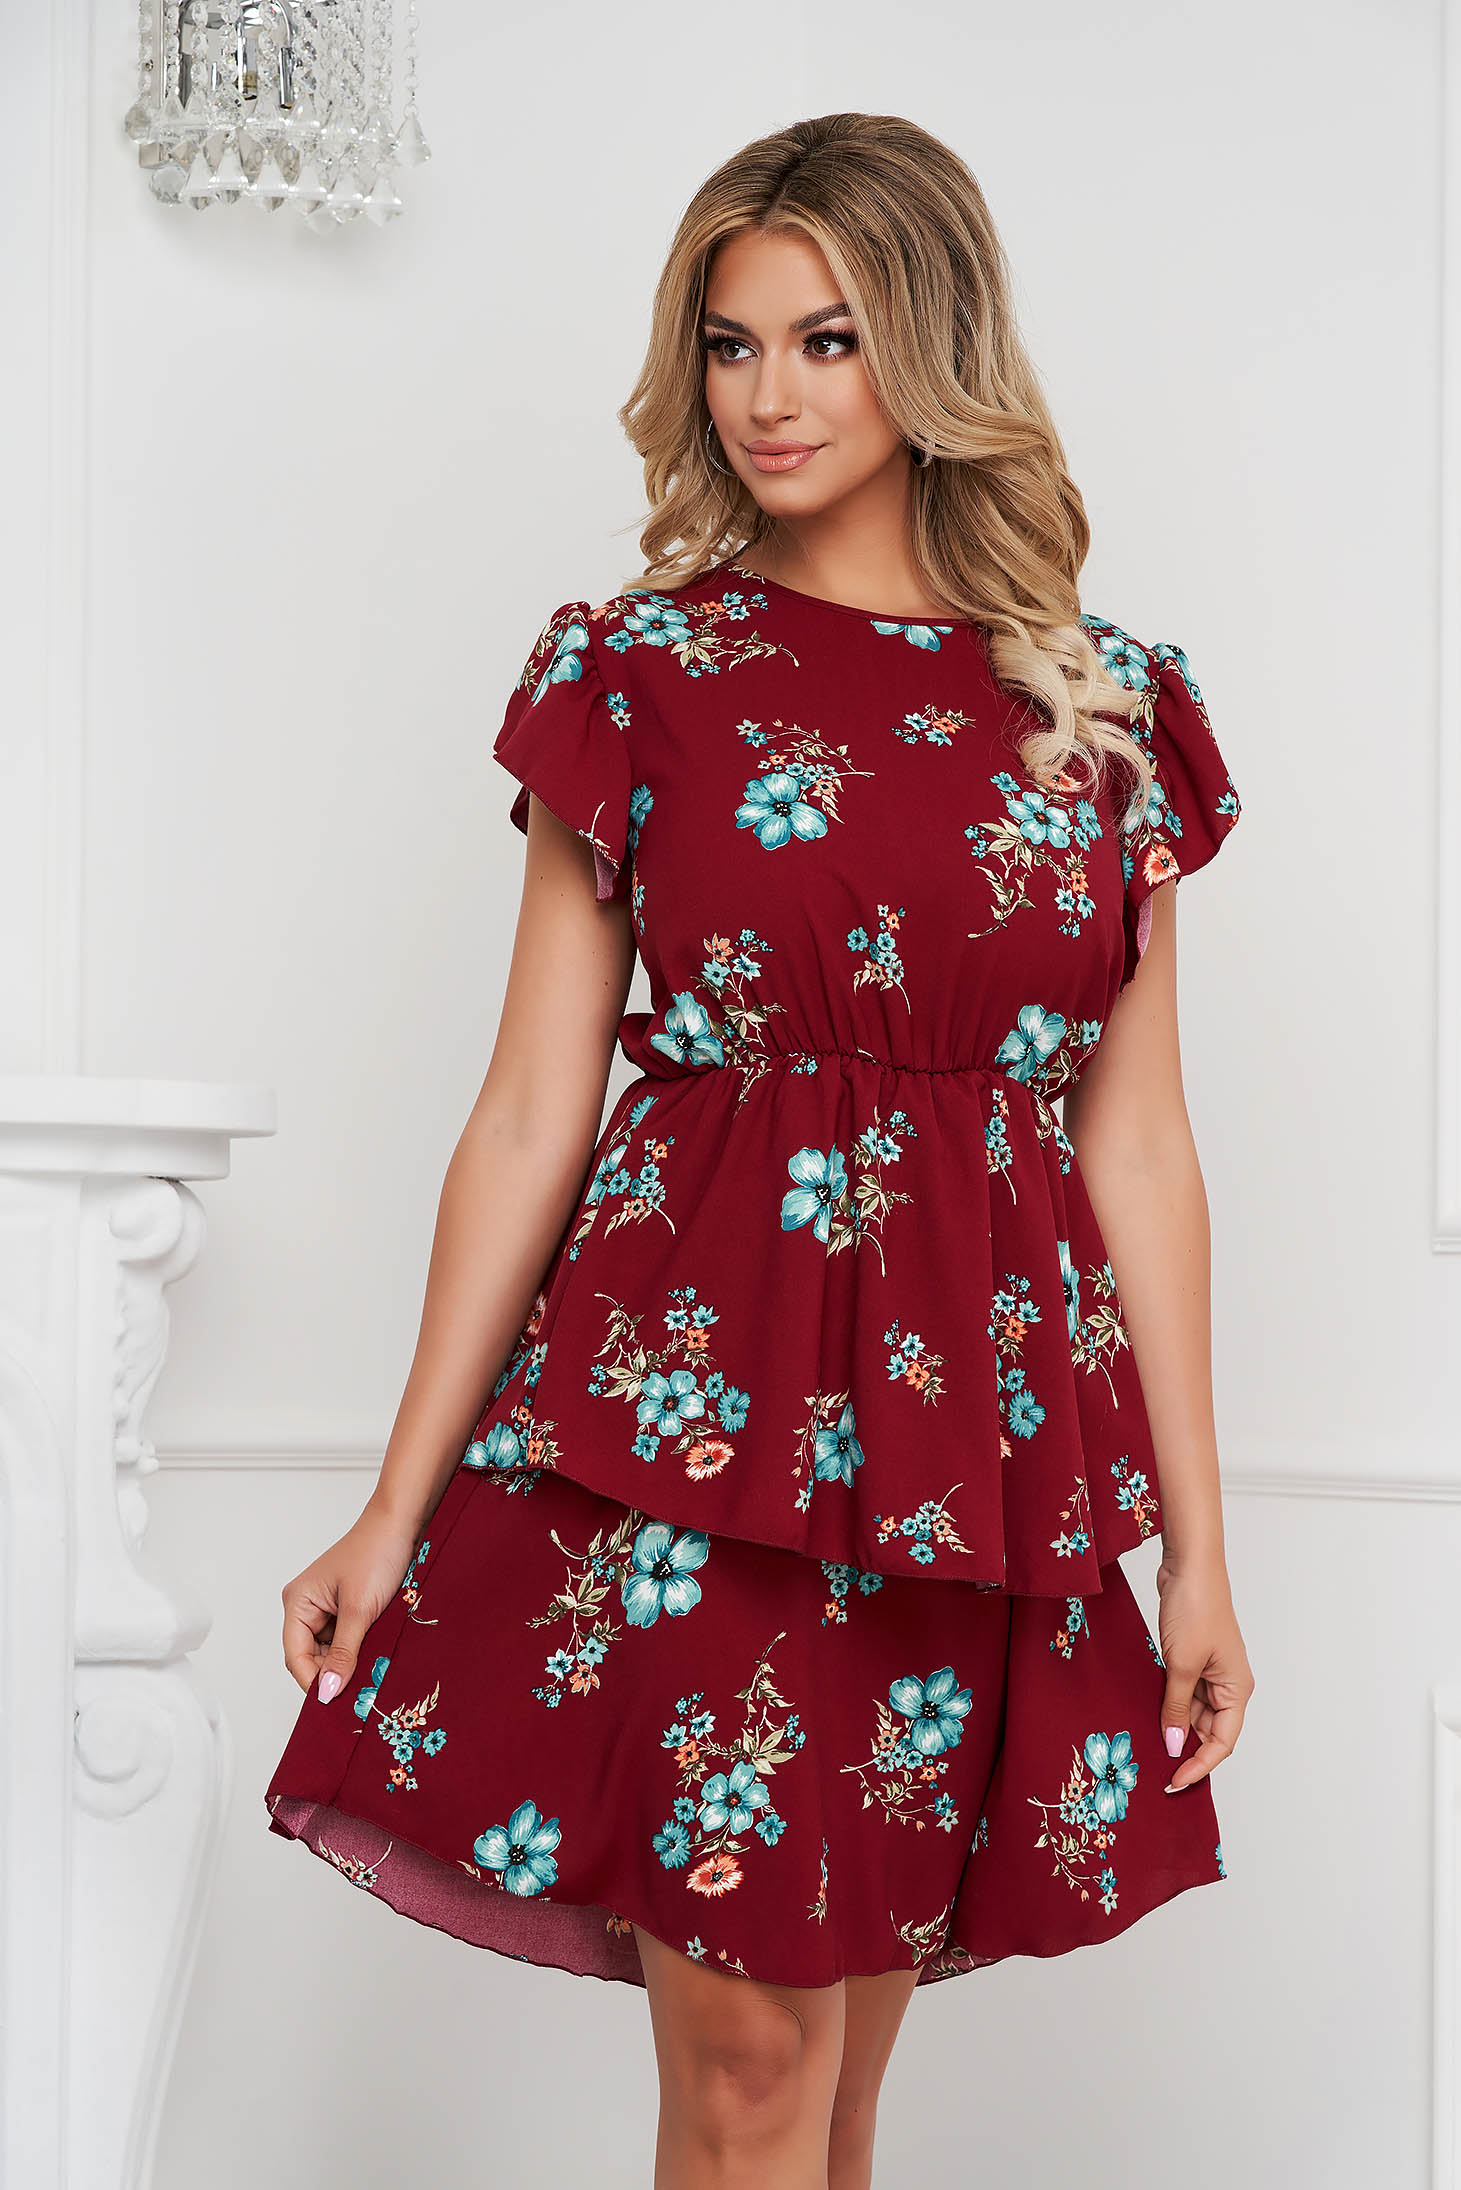 Dress midi cloche with elastic waist with ruffle details short sleeves